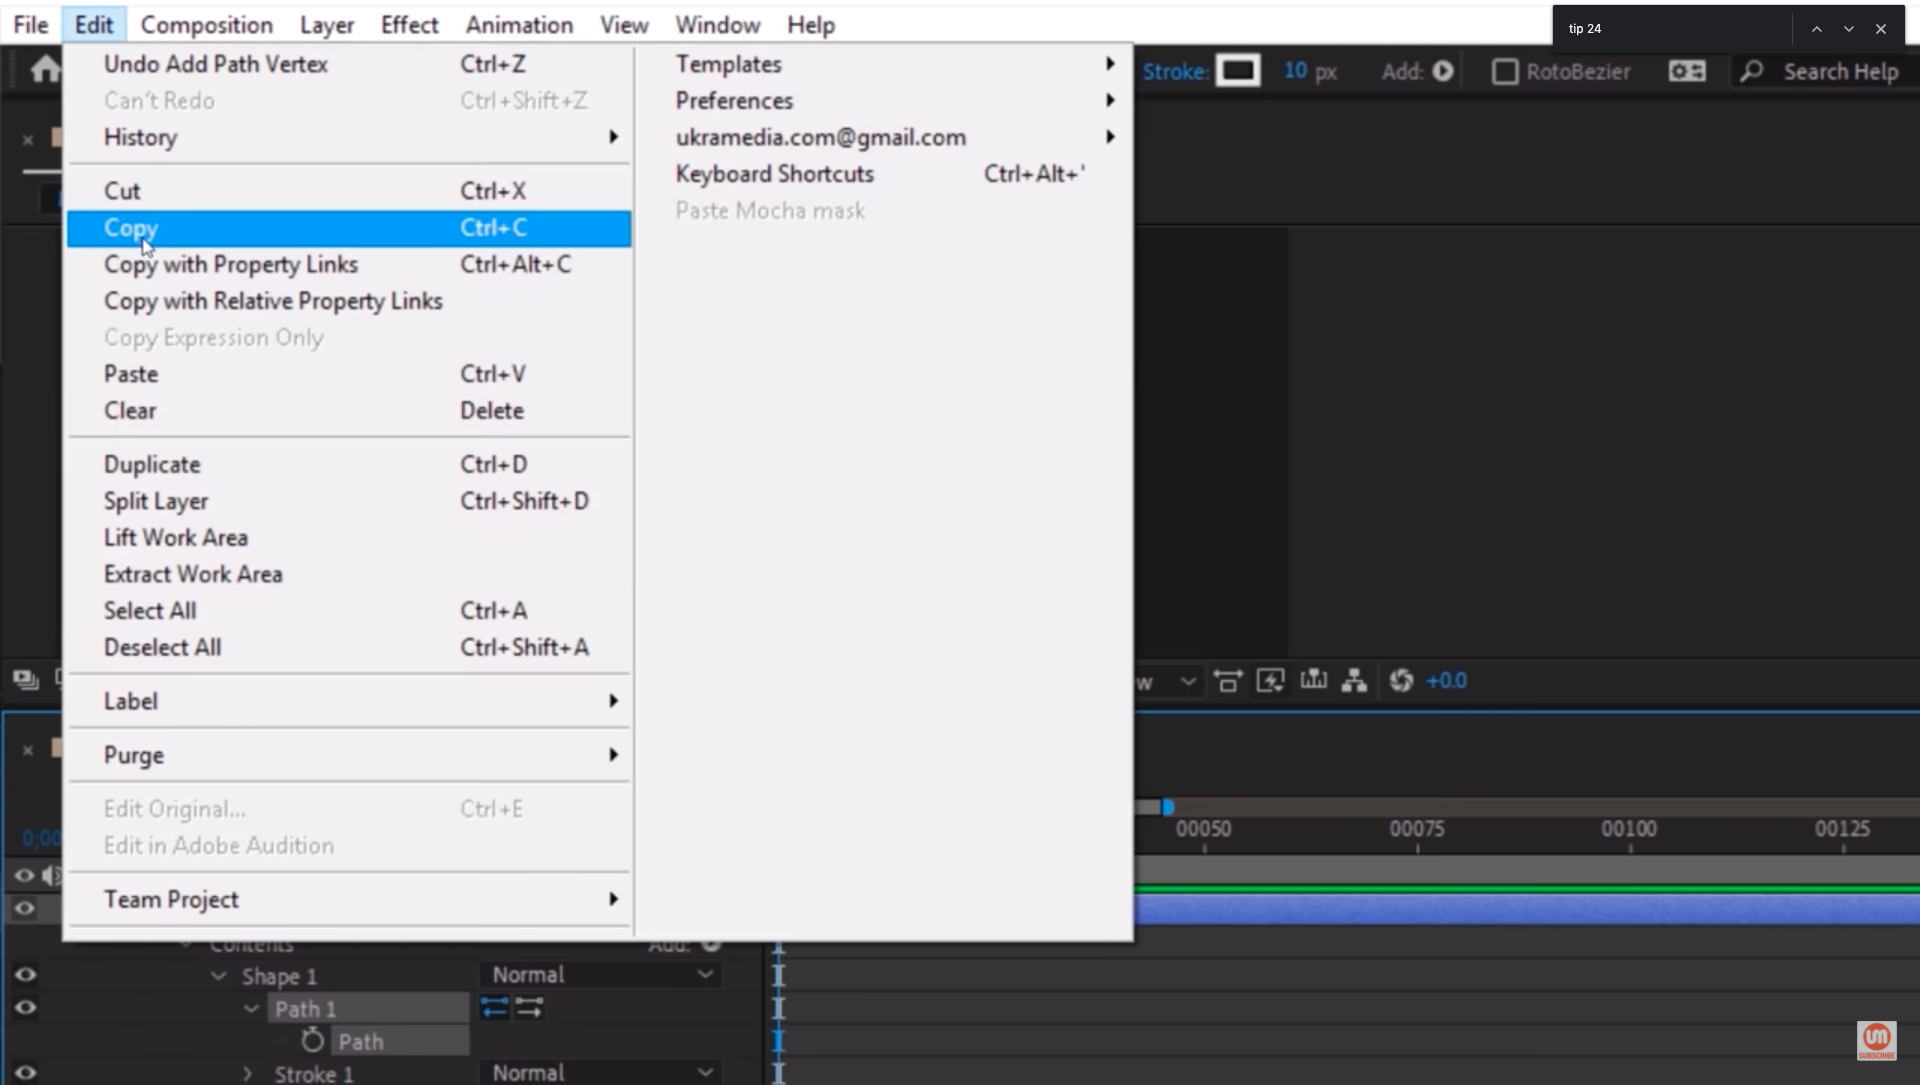 Copy Path Property After Effects